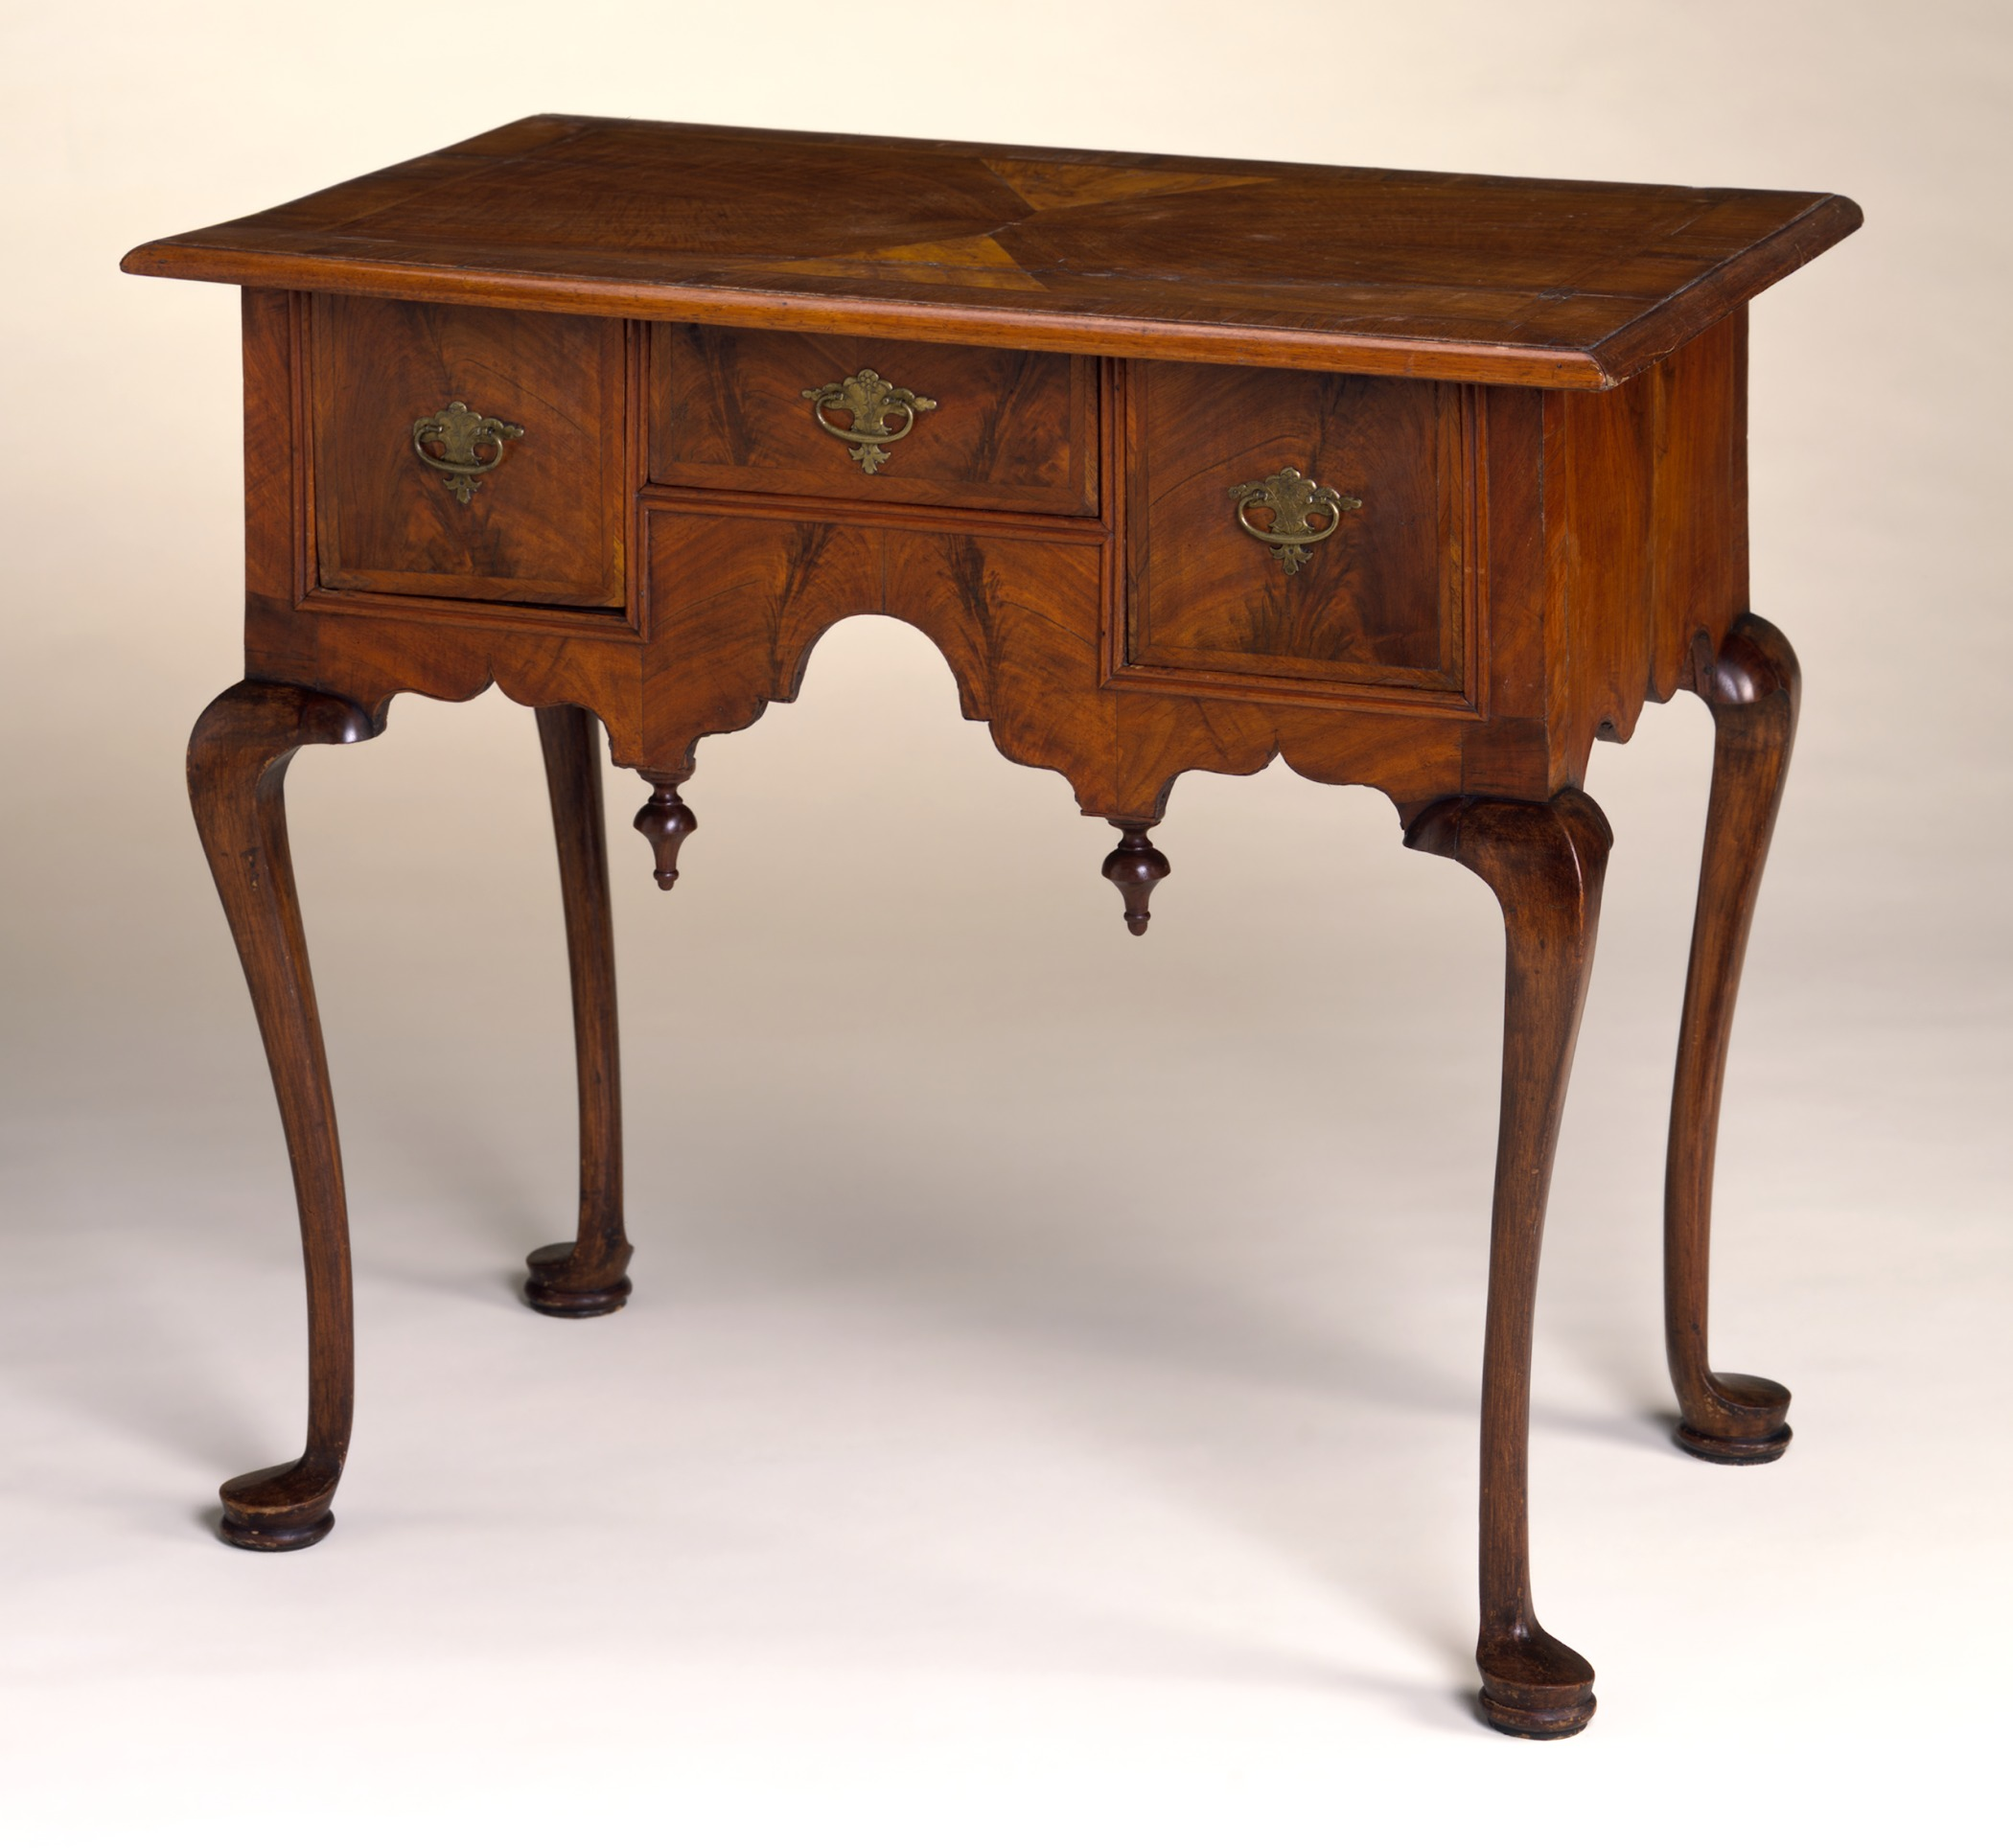 Queen anne furniture decoration access for Table wikipedia